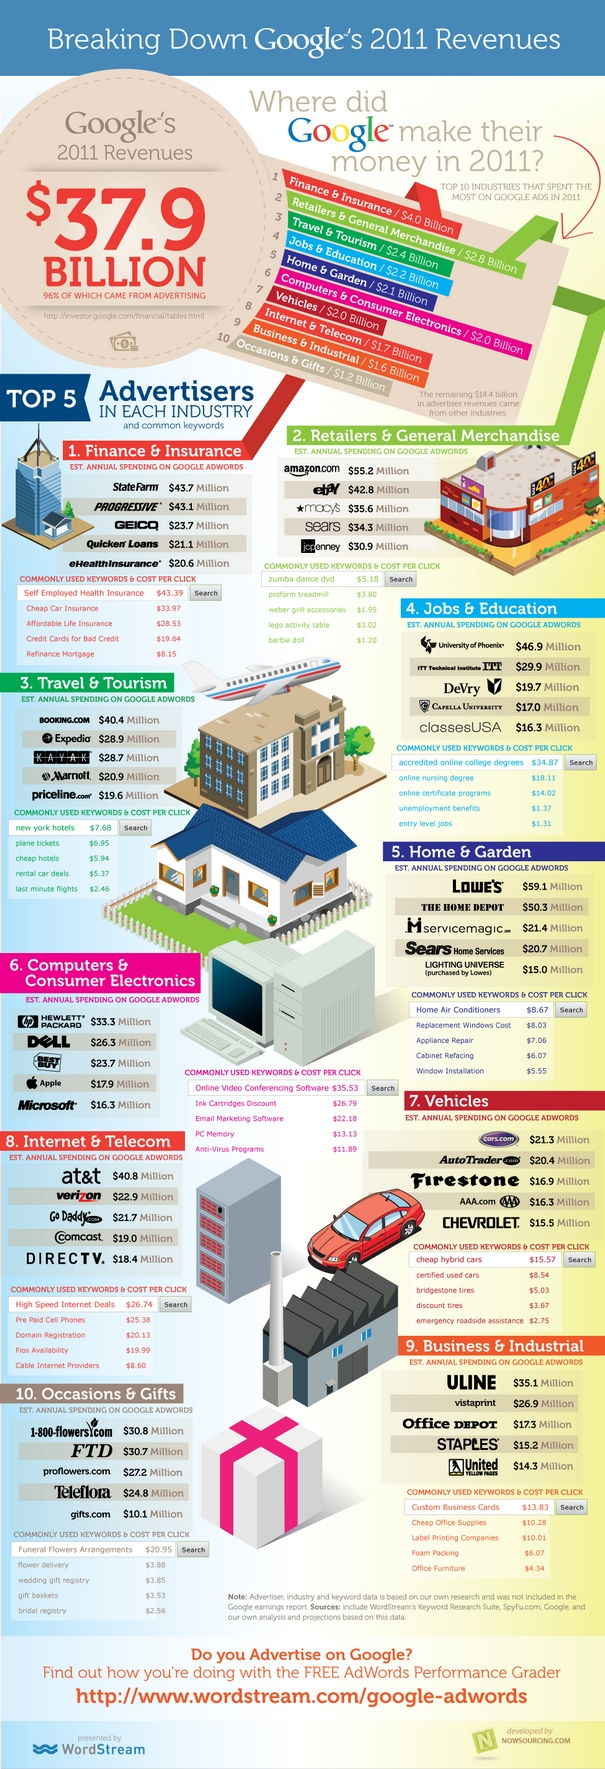 What Industries Contributed to Google's $37.9 Billion in 2011 Revenues? [Infographic]